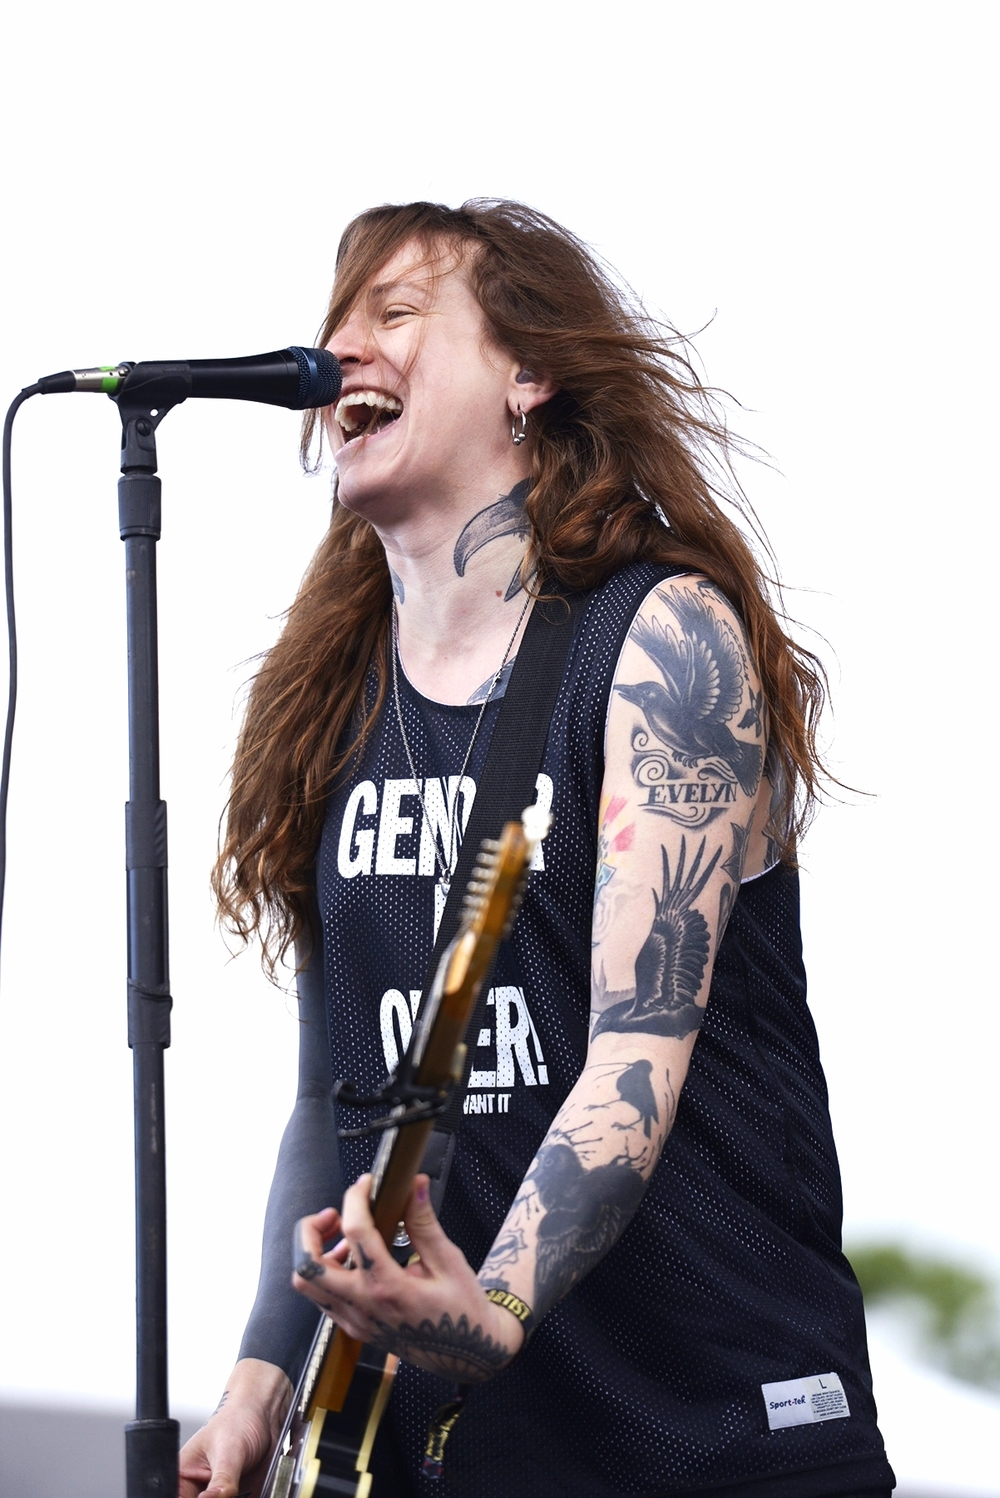 againstme_riotfest_chicago_2015_1_laurajanegrace.jpg